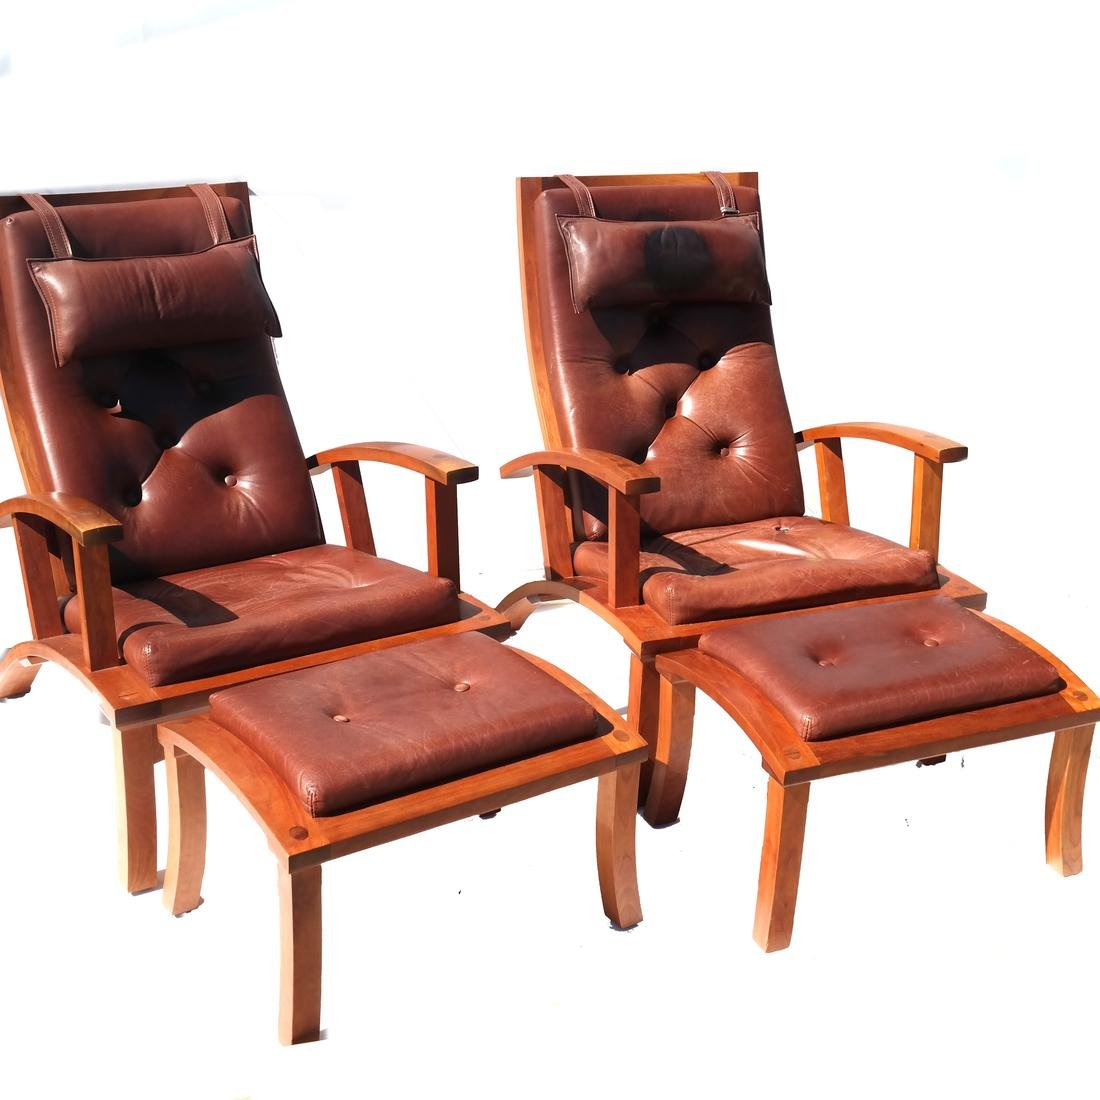 Pair of Tufted Armchairs With Matching Ottomans